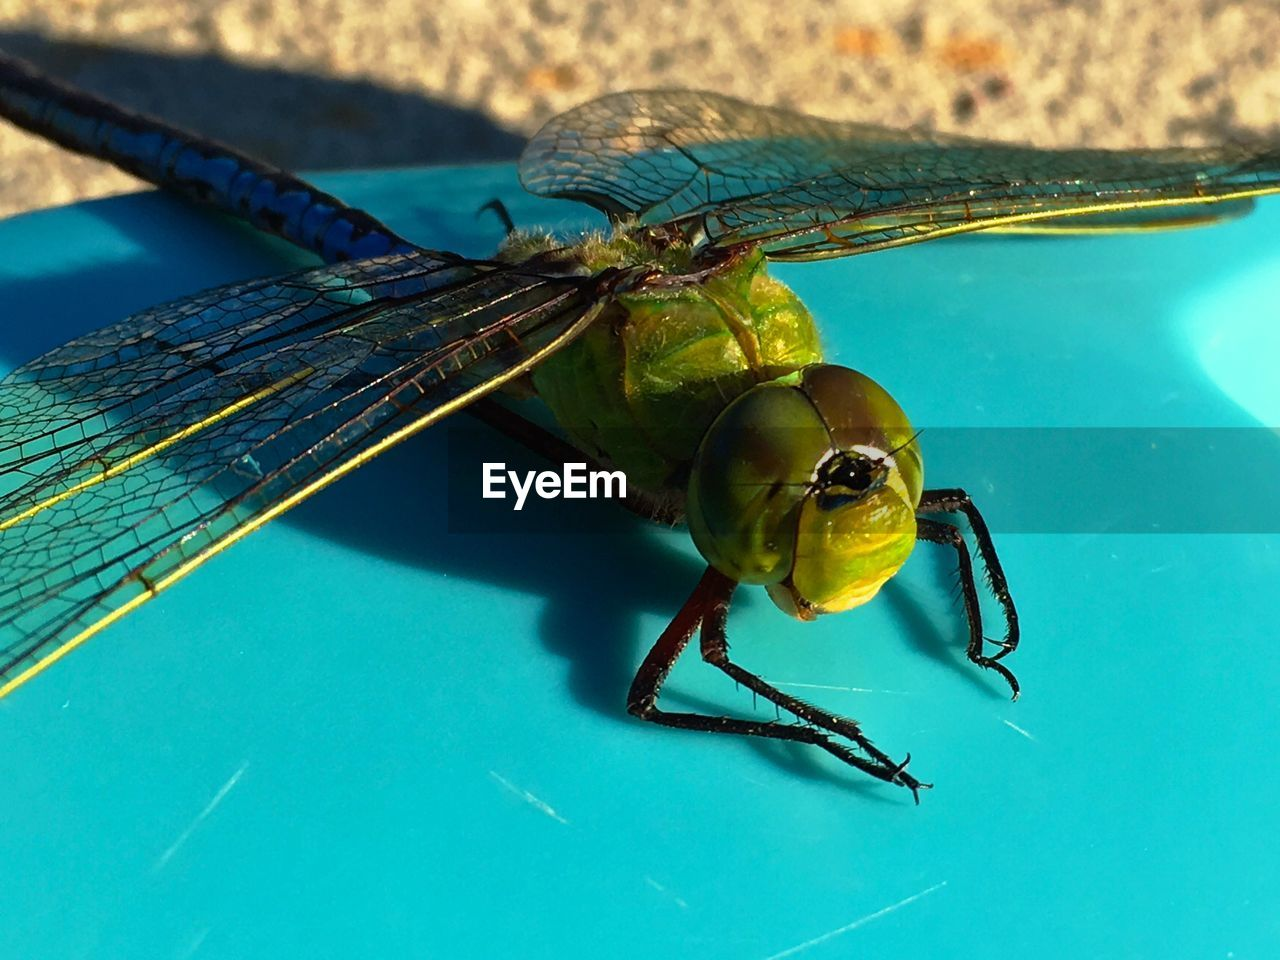 Close-up of dragonfly on play equipment